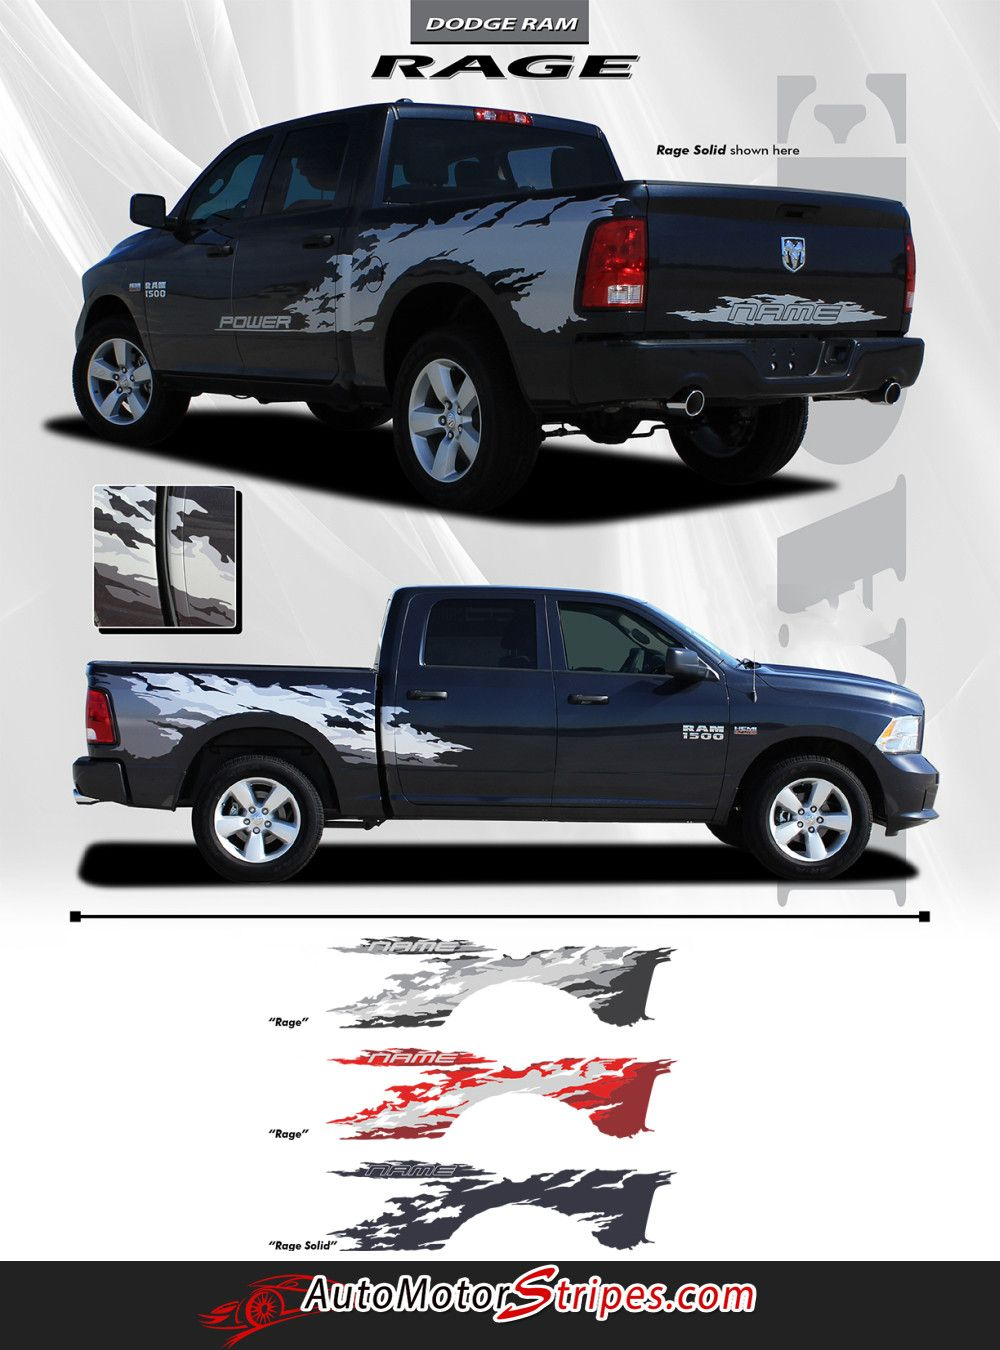 20092018 Dodge Ram Rage Multi Color Digital Print or